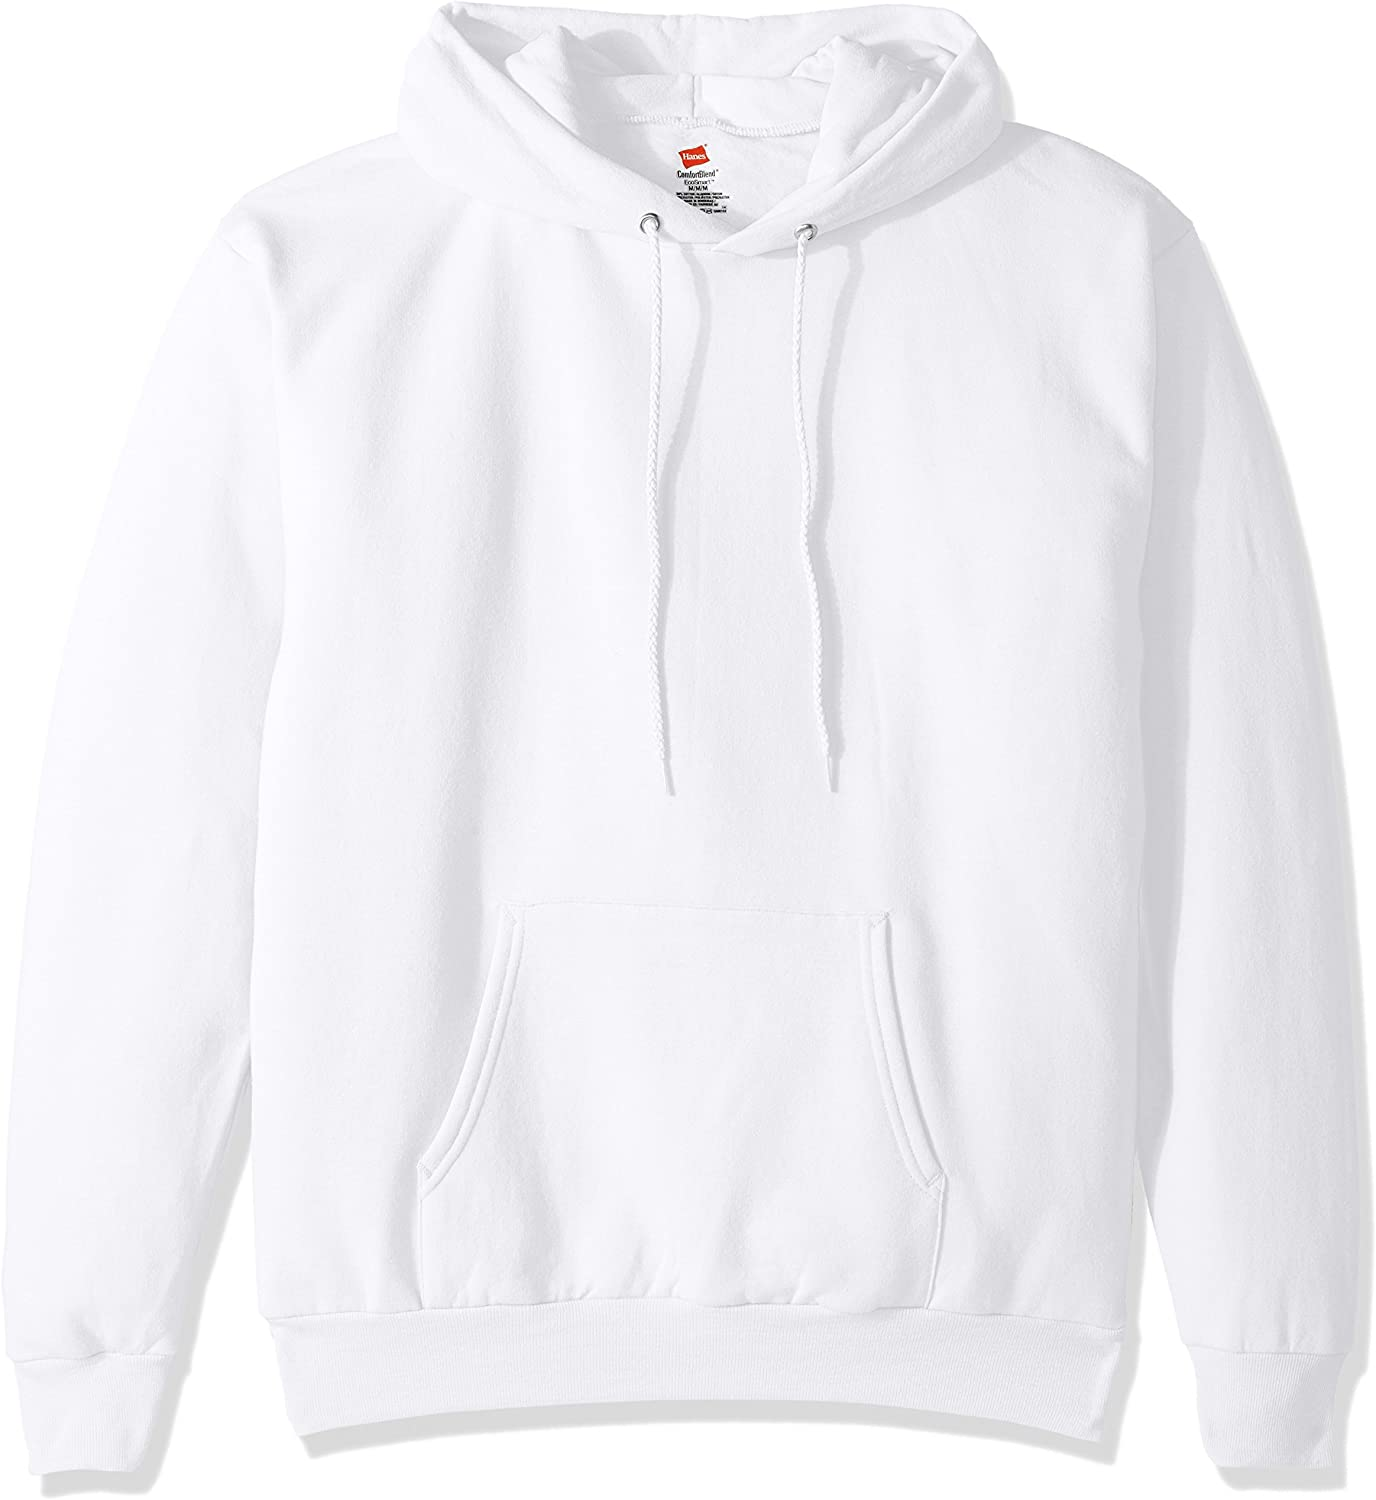 Hanes Mens Pullover Ecosmart Fleece Hooded Sweatshirt at  Men's Clothing store